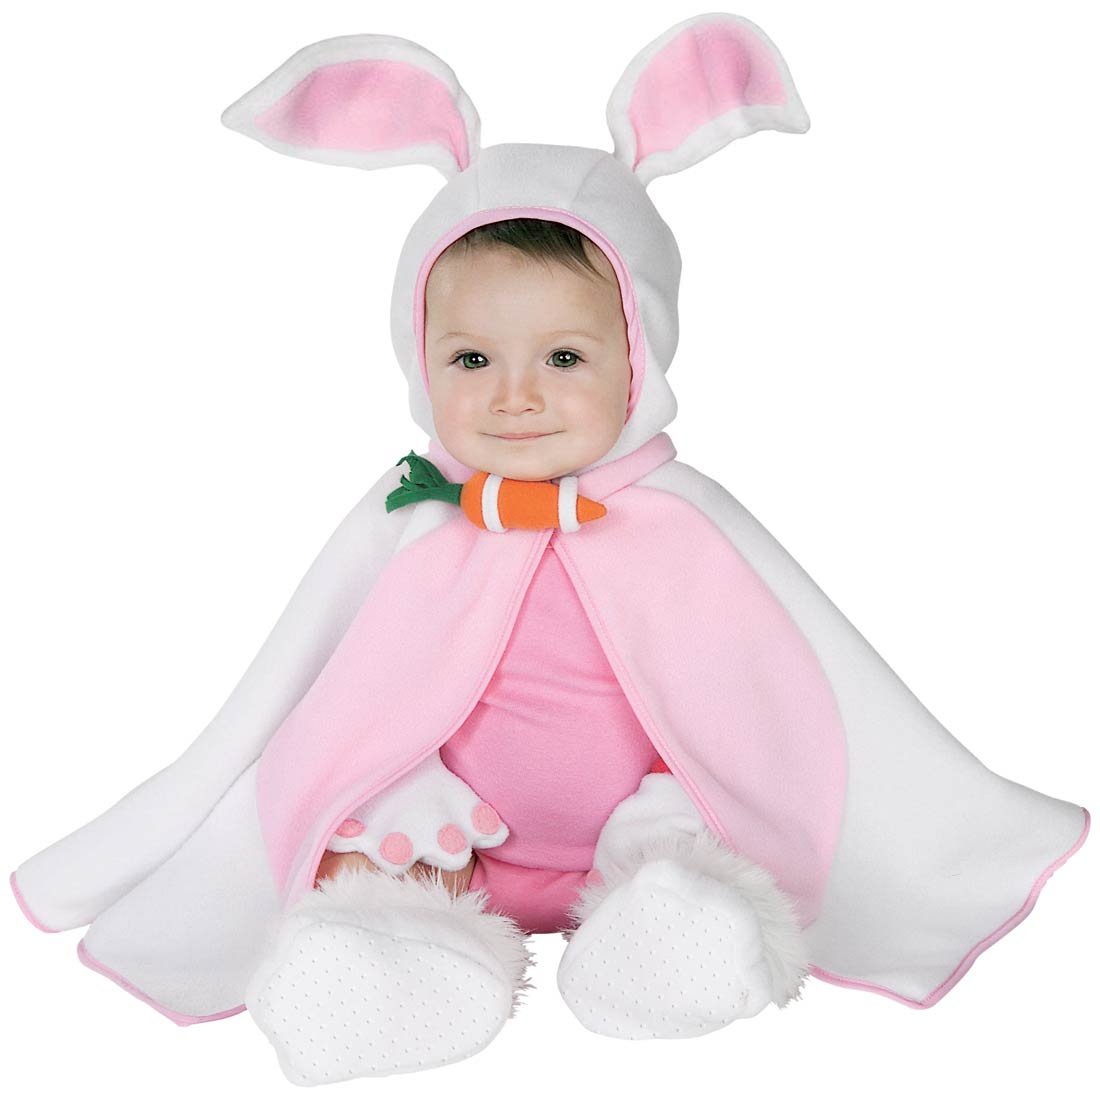 2a44d2b6b347 25 Cute Easter Outfits for Babies and Toddlers 2019